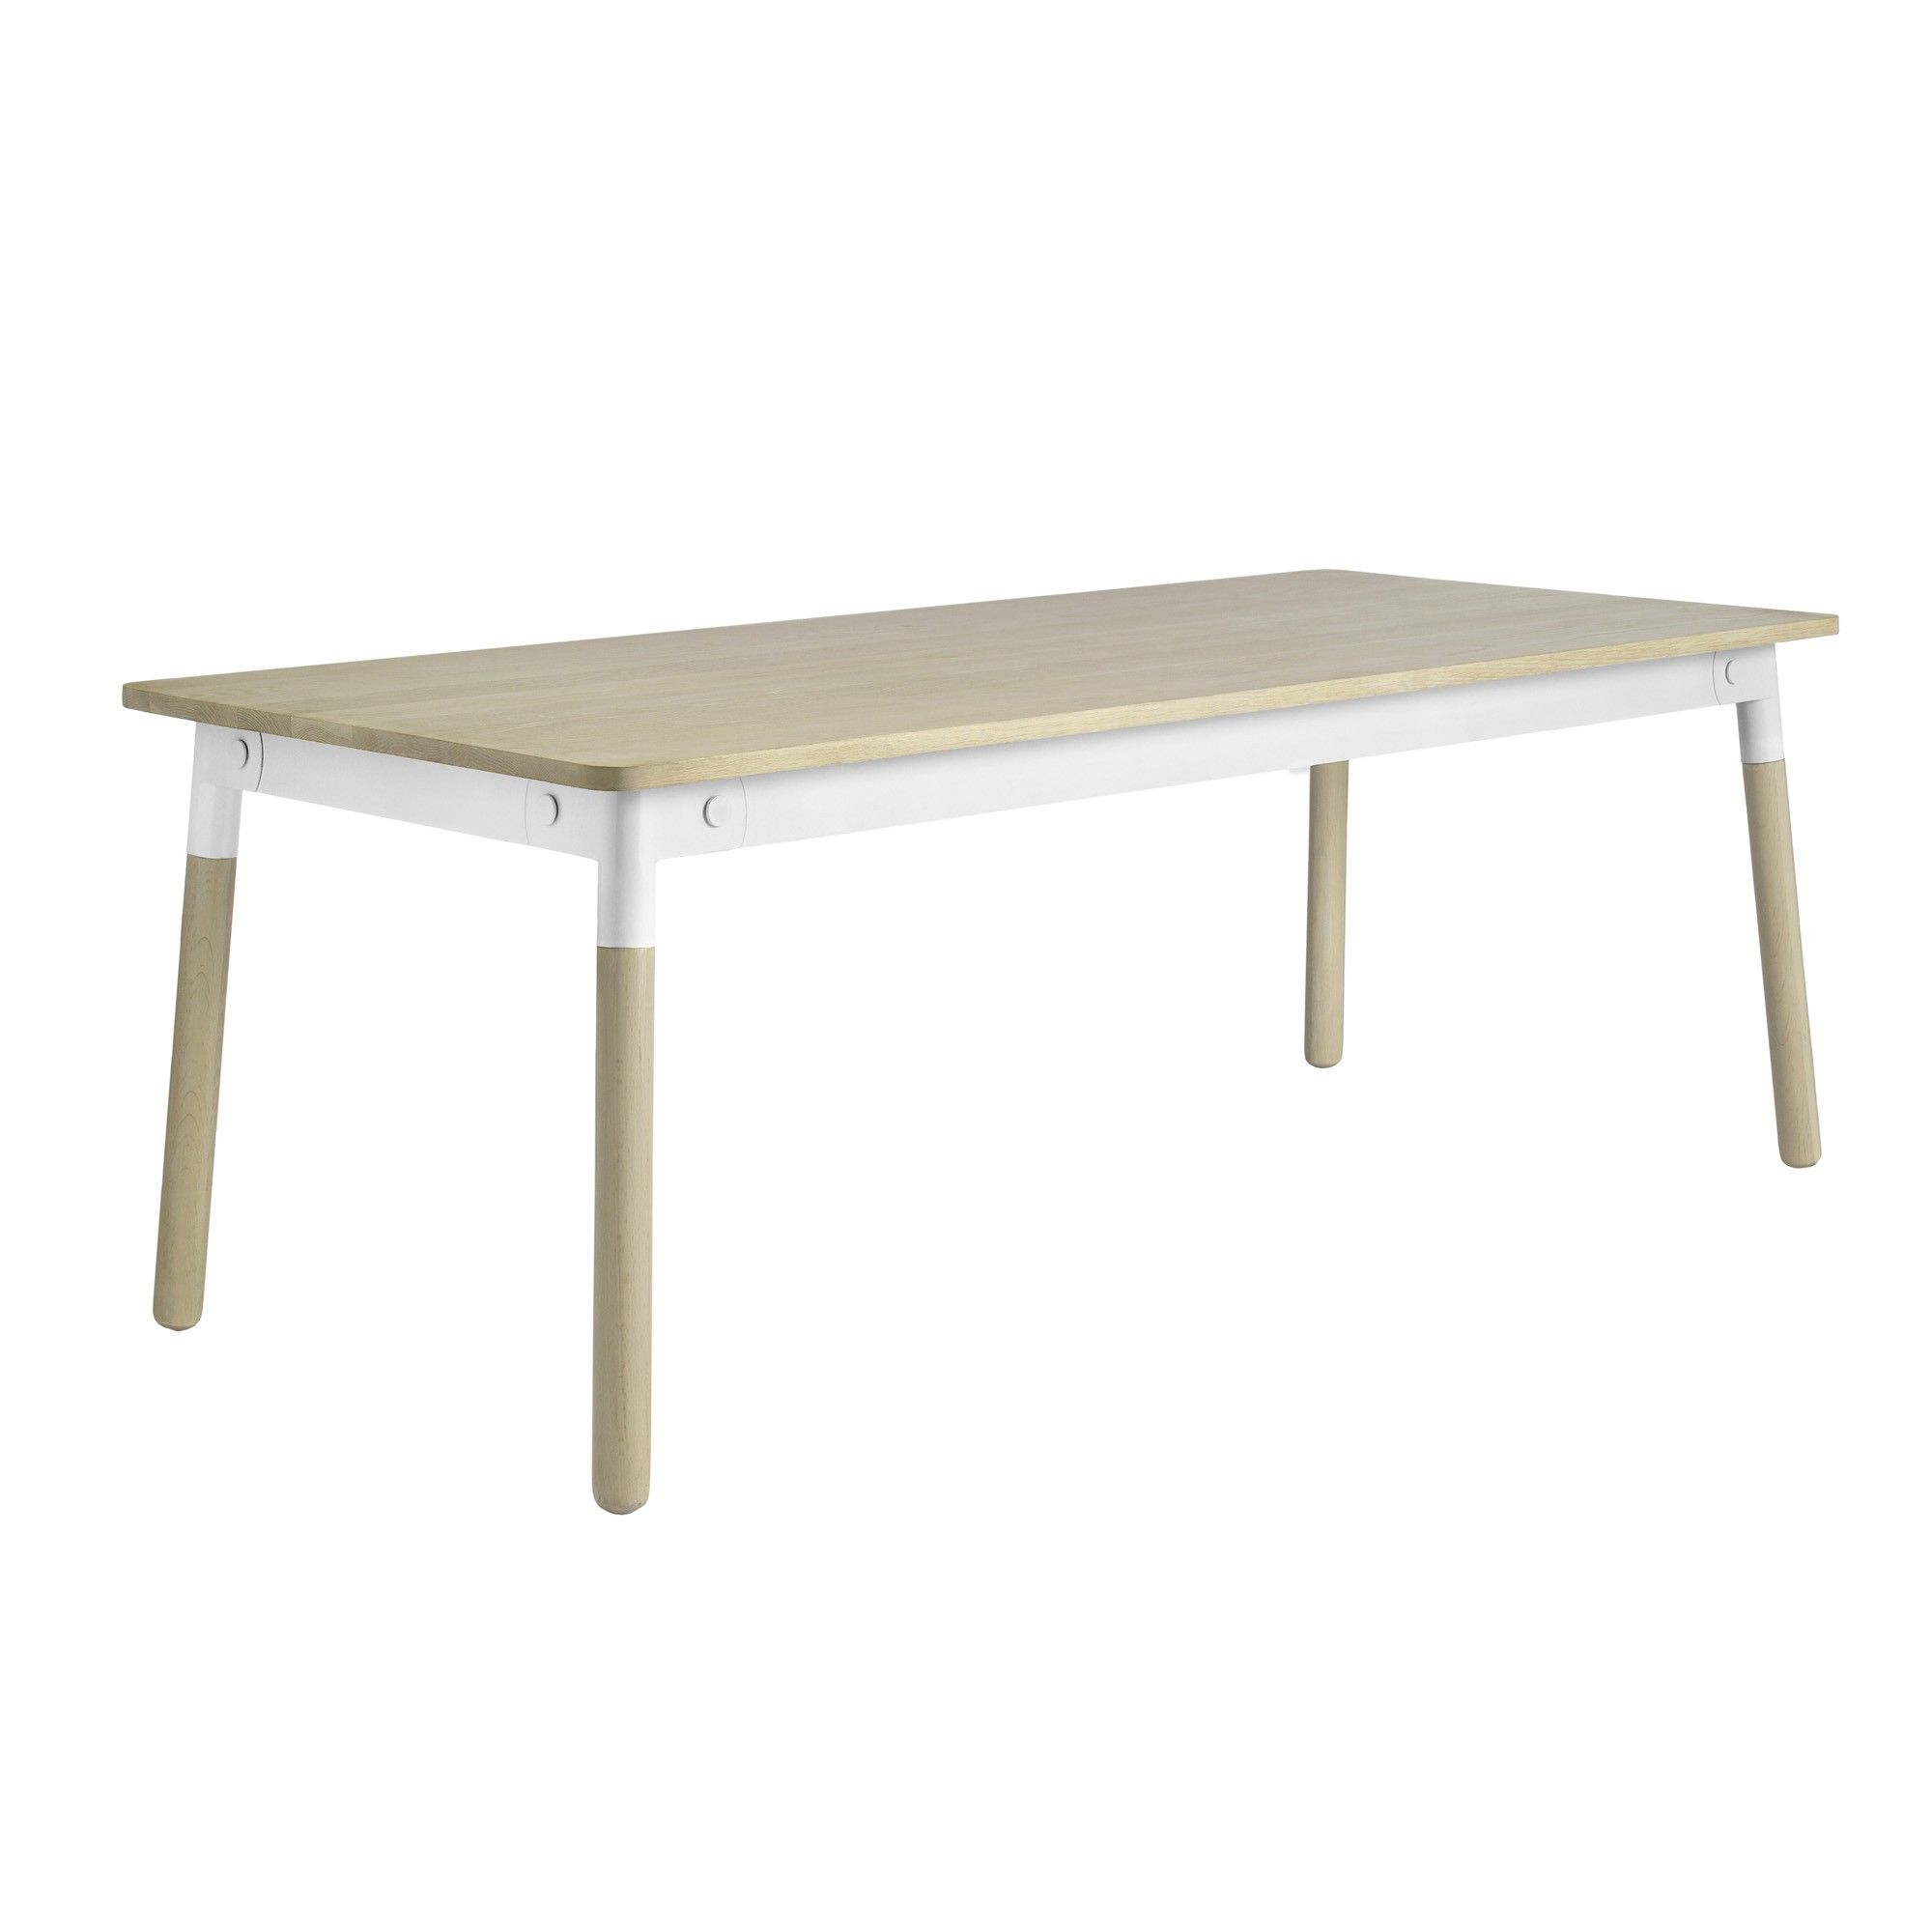 Table à Manger Marisa Table Adaptable Muuto Furniture Pinterest Table à Manger